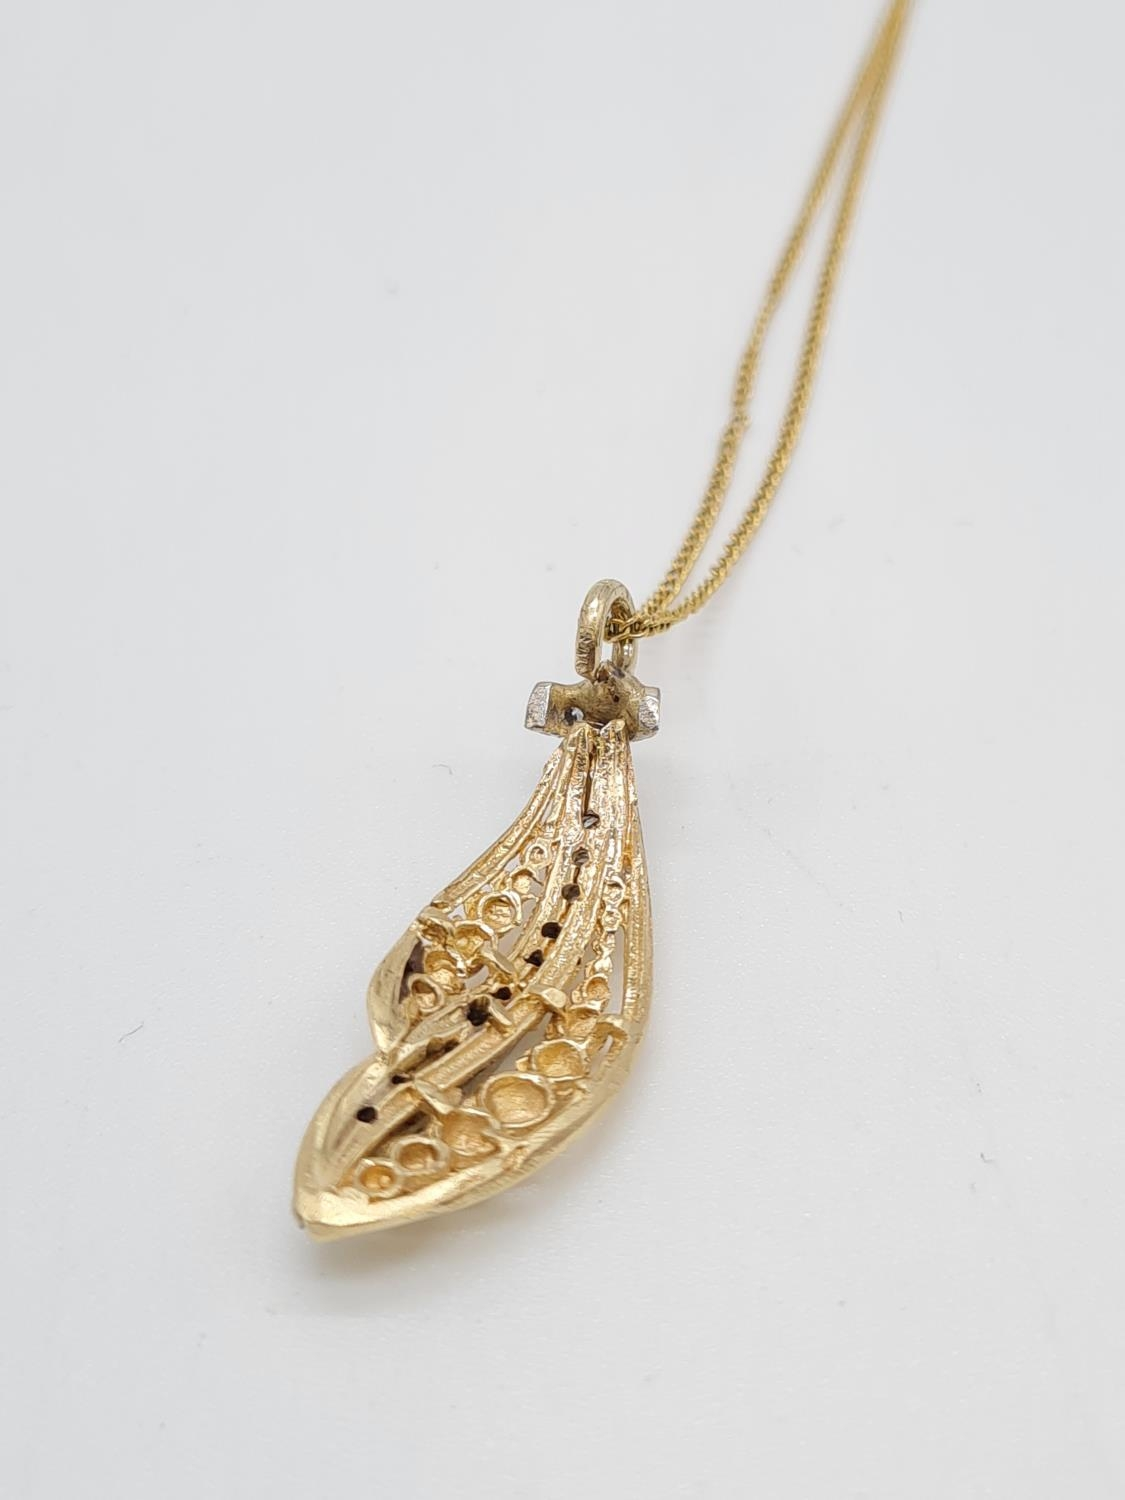 18ct gold diamond set pendant on chain, weight 3.69g and 40cm long, pendant 3 x 1cm - Image 9 of 9